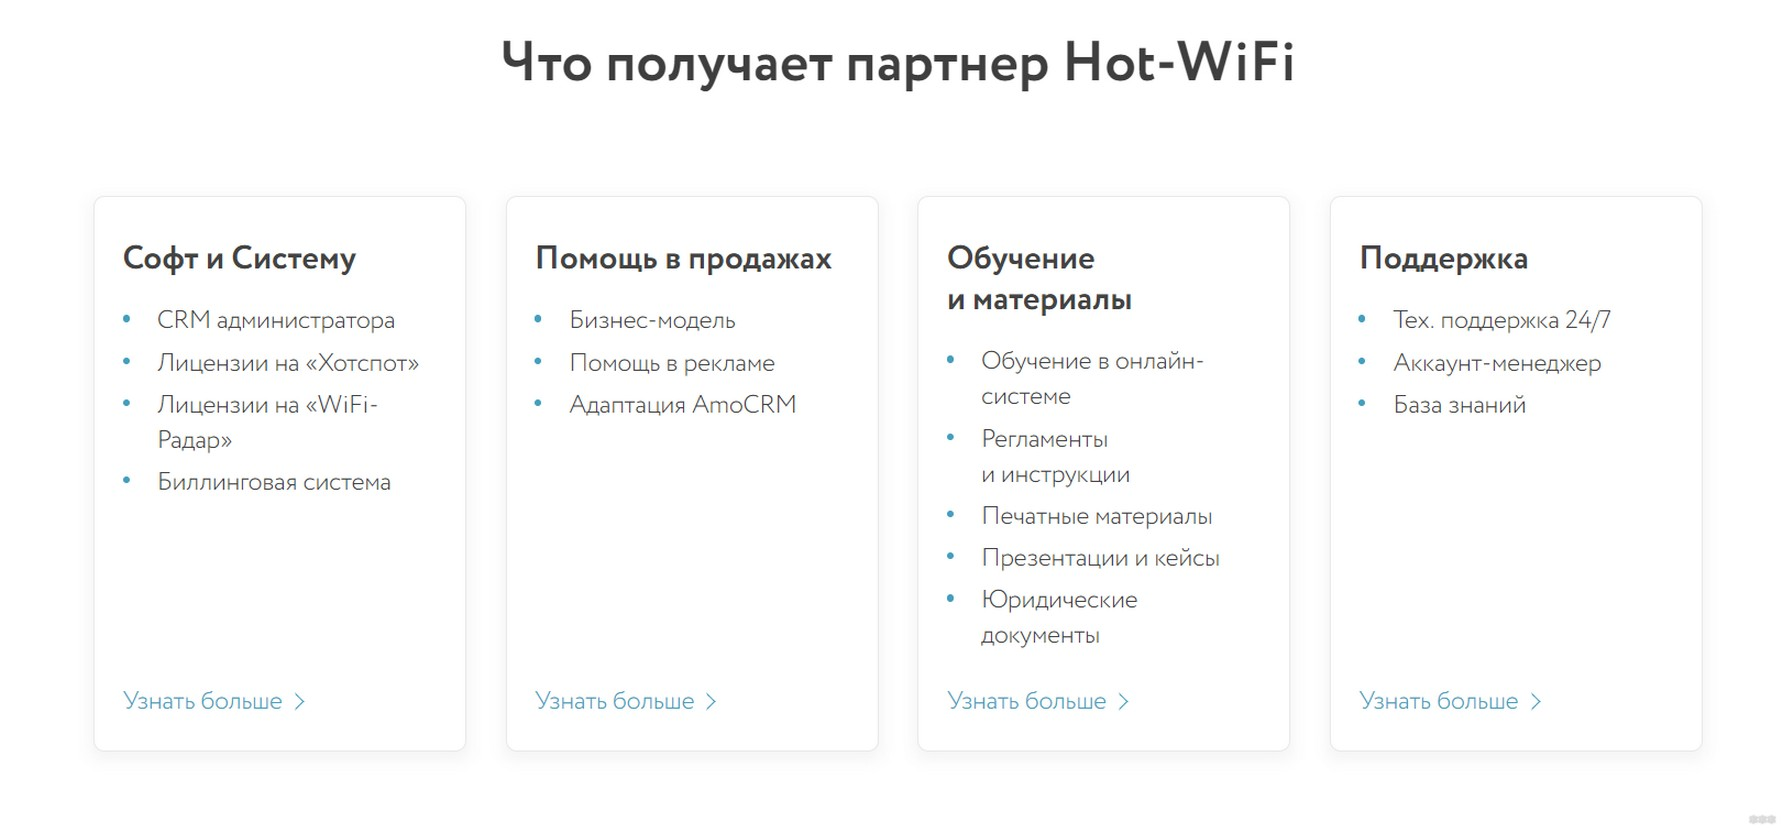 Hot-WiFi: от Wi-Fi авторизации и радара до маркетинга и франшизы